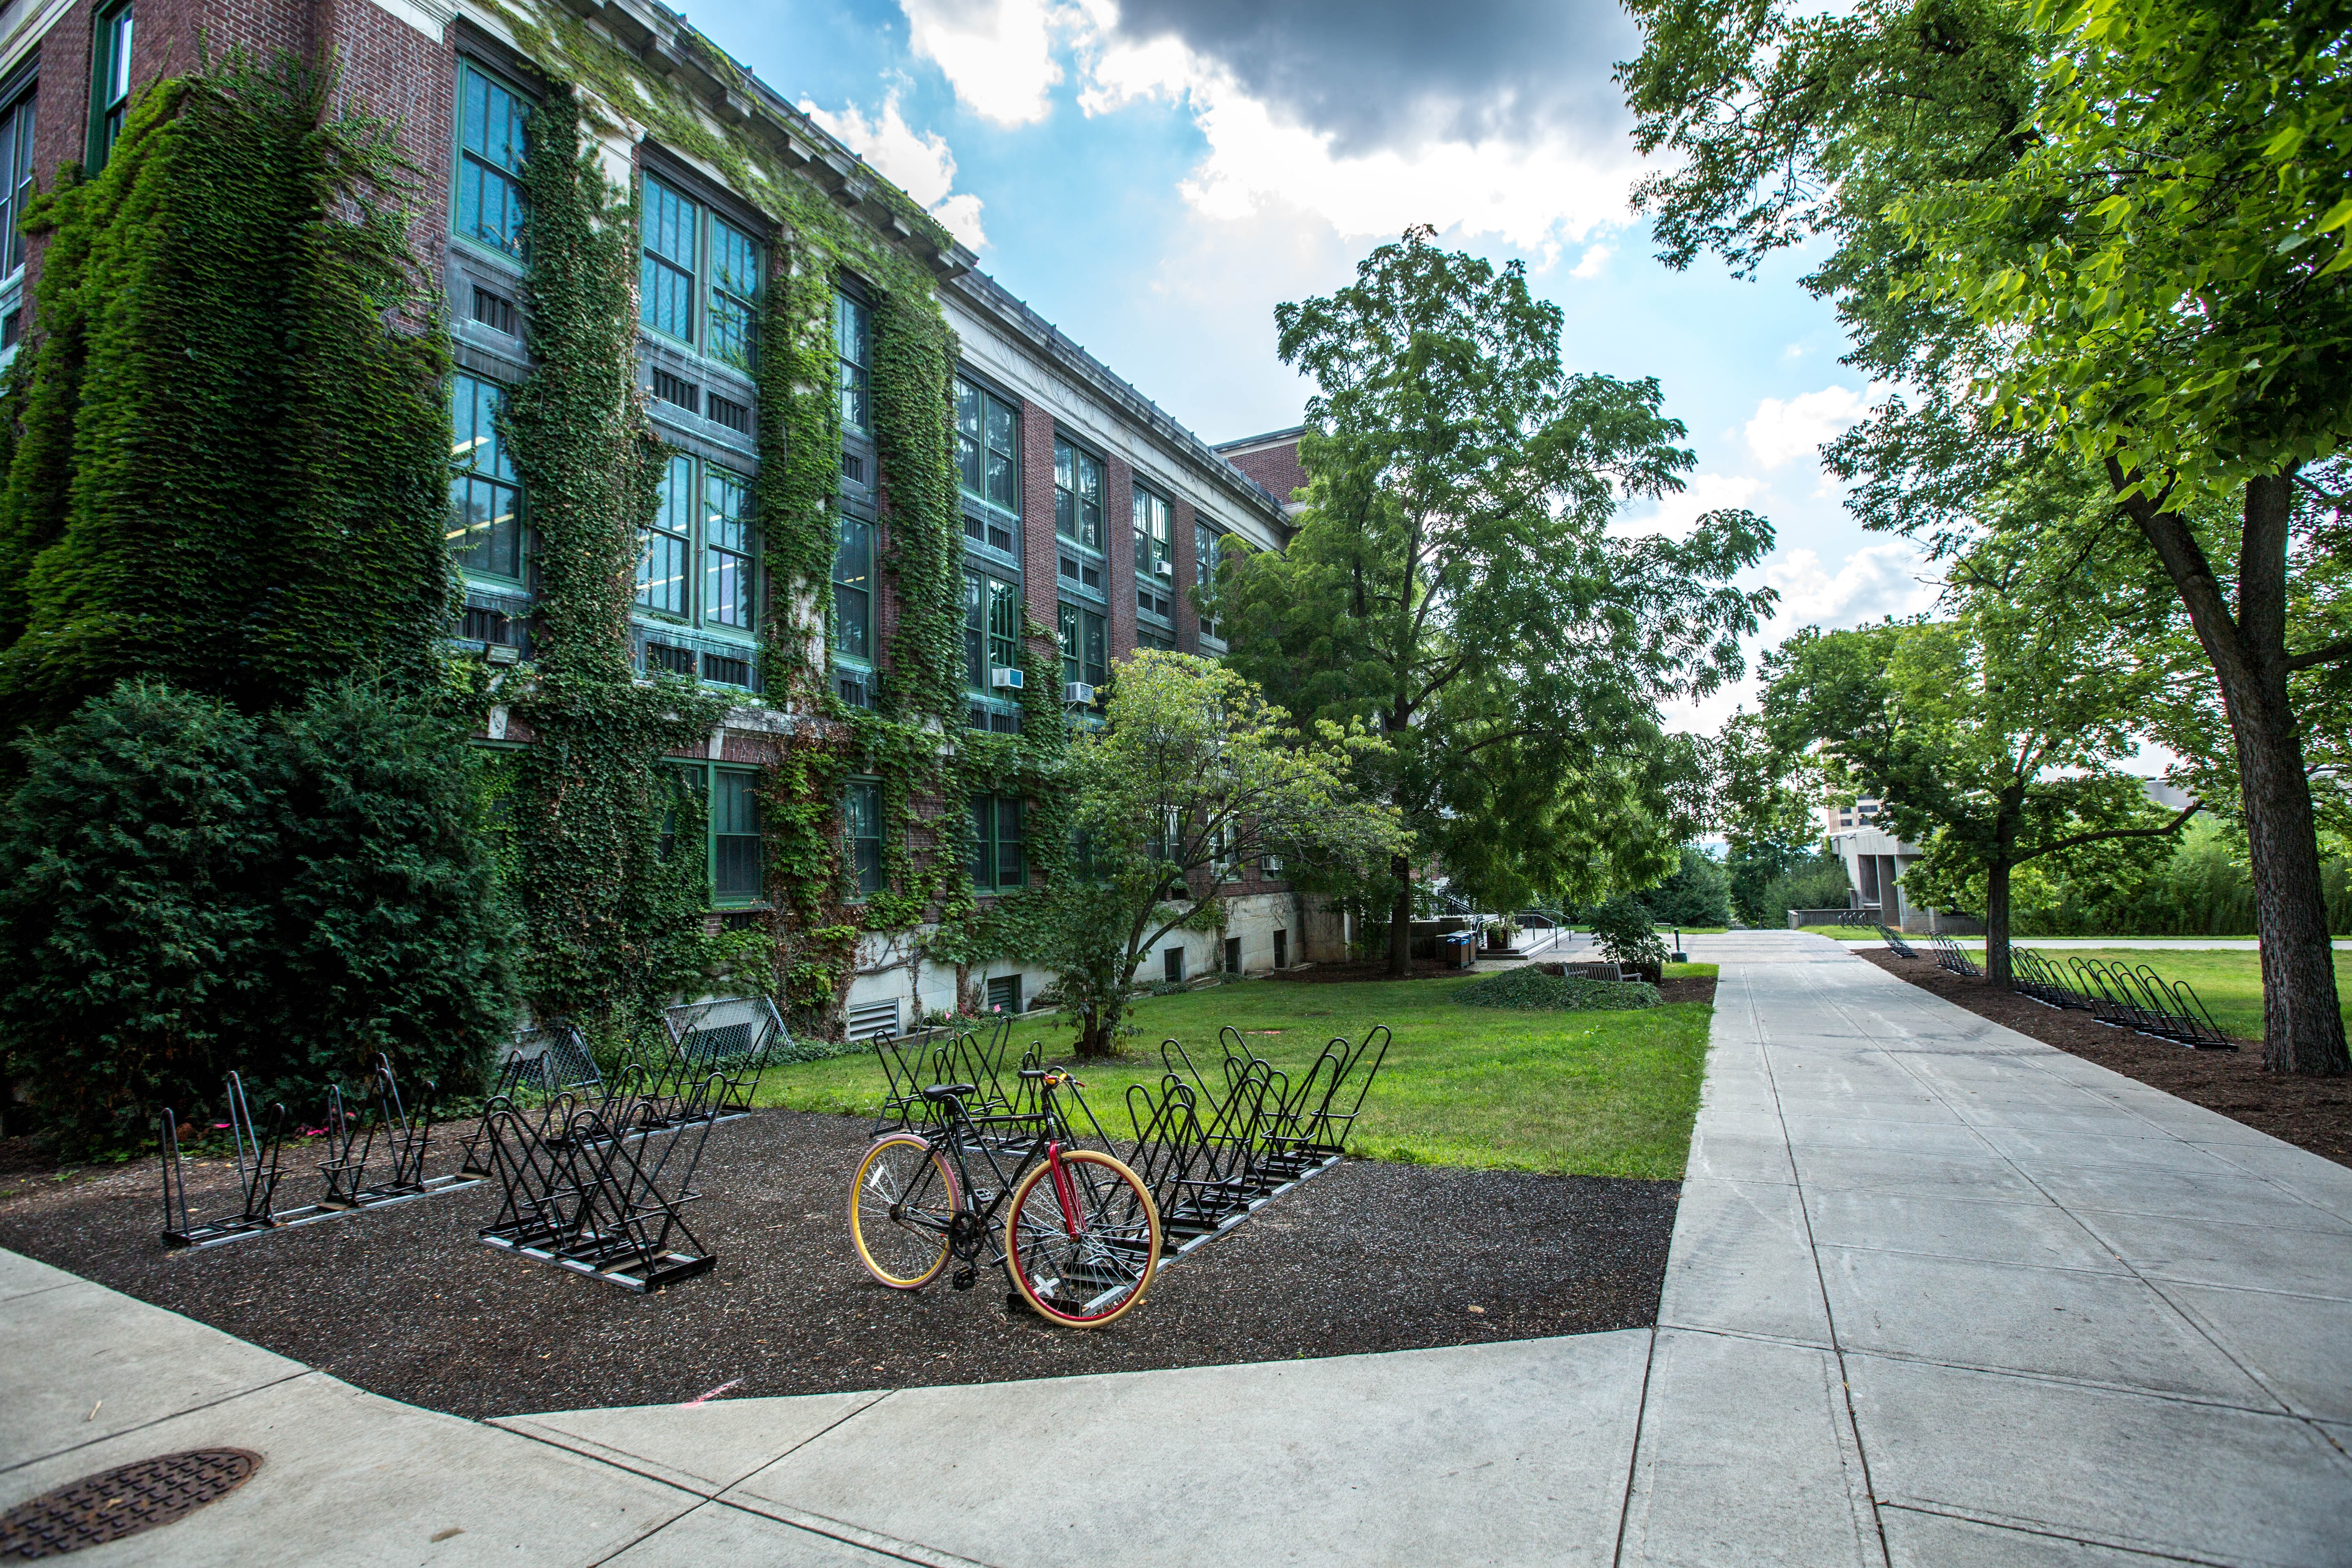 black bicycle parked in front of building